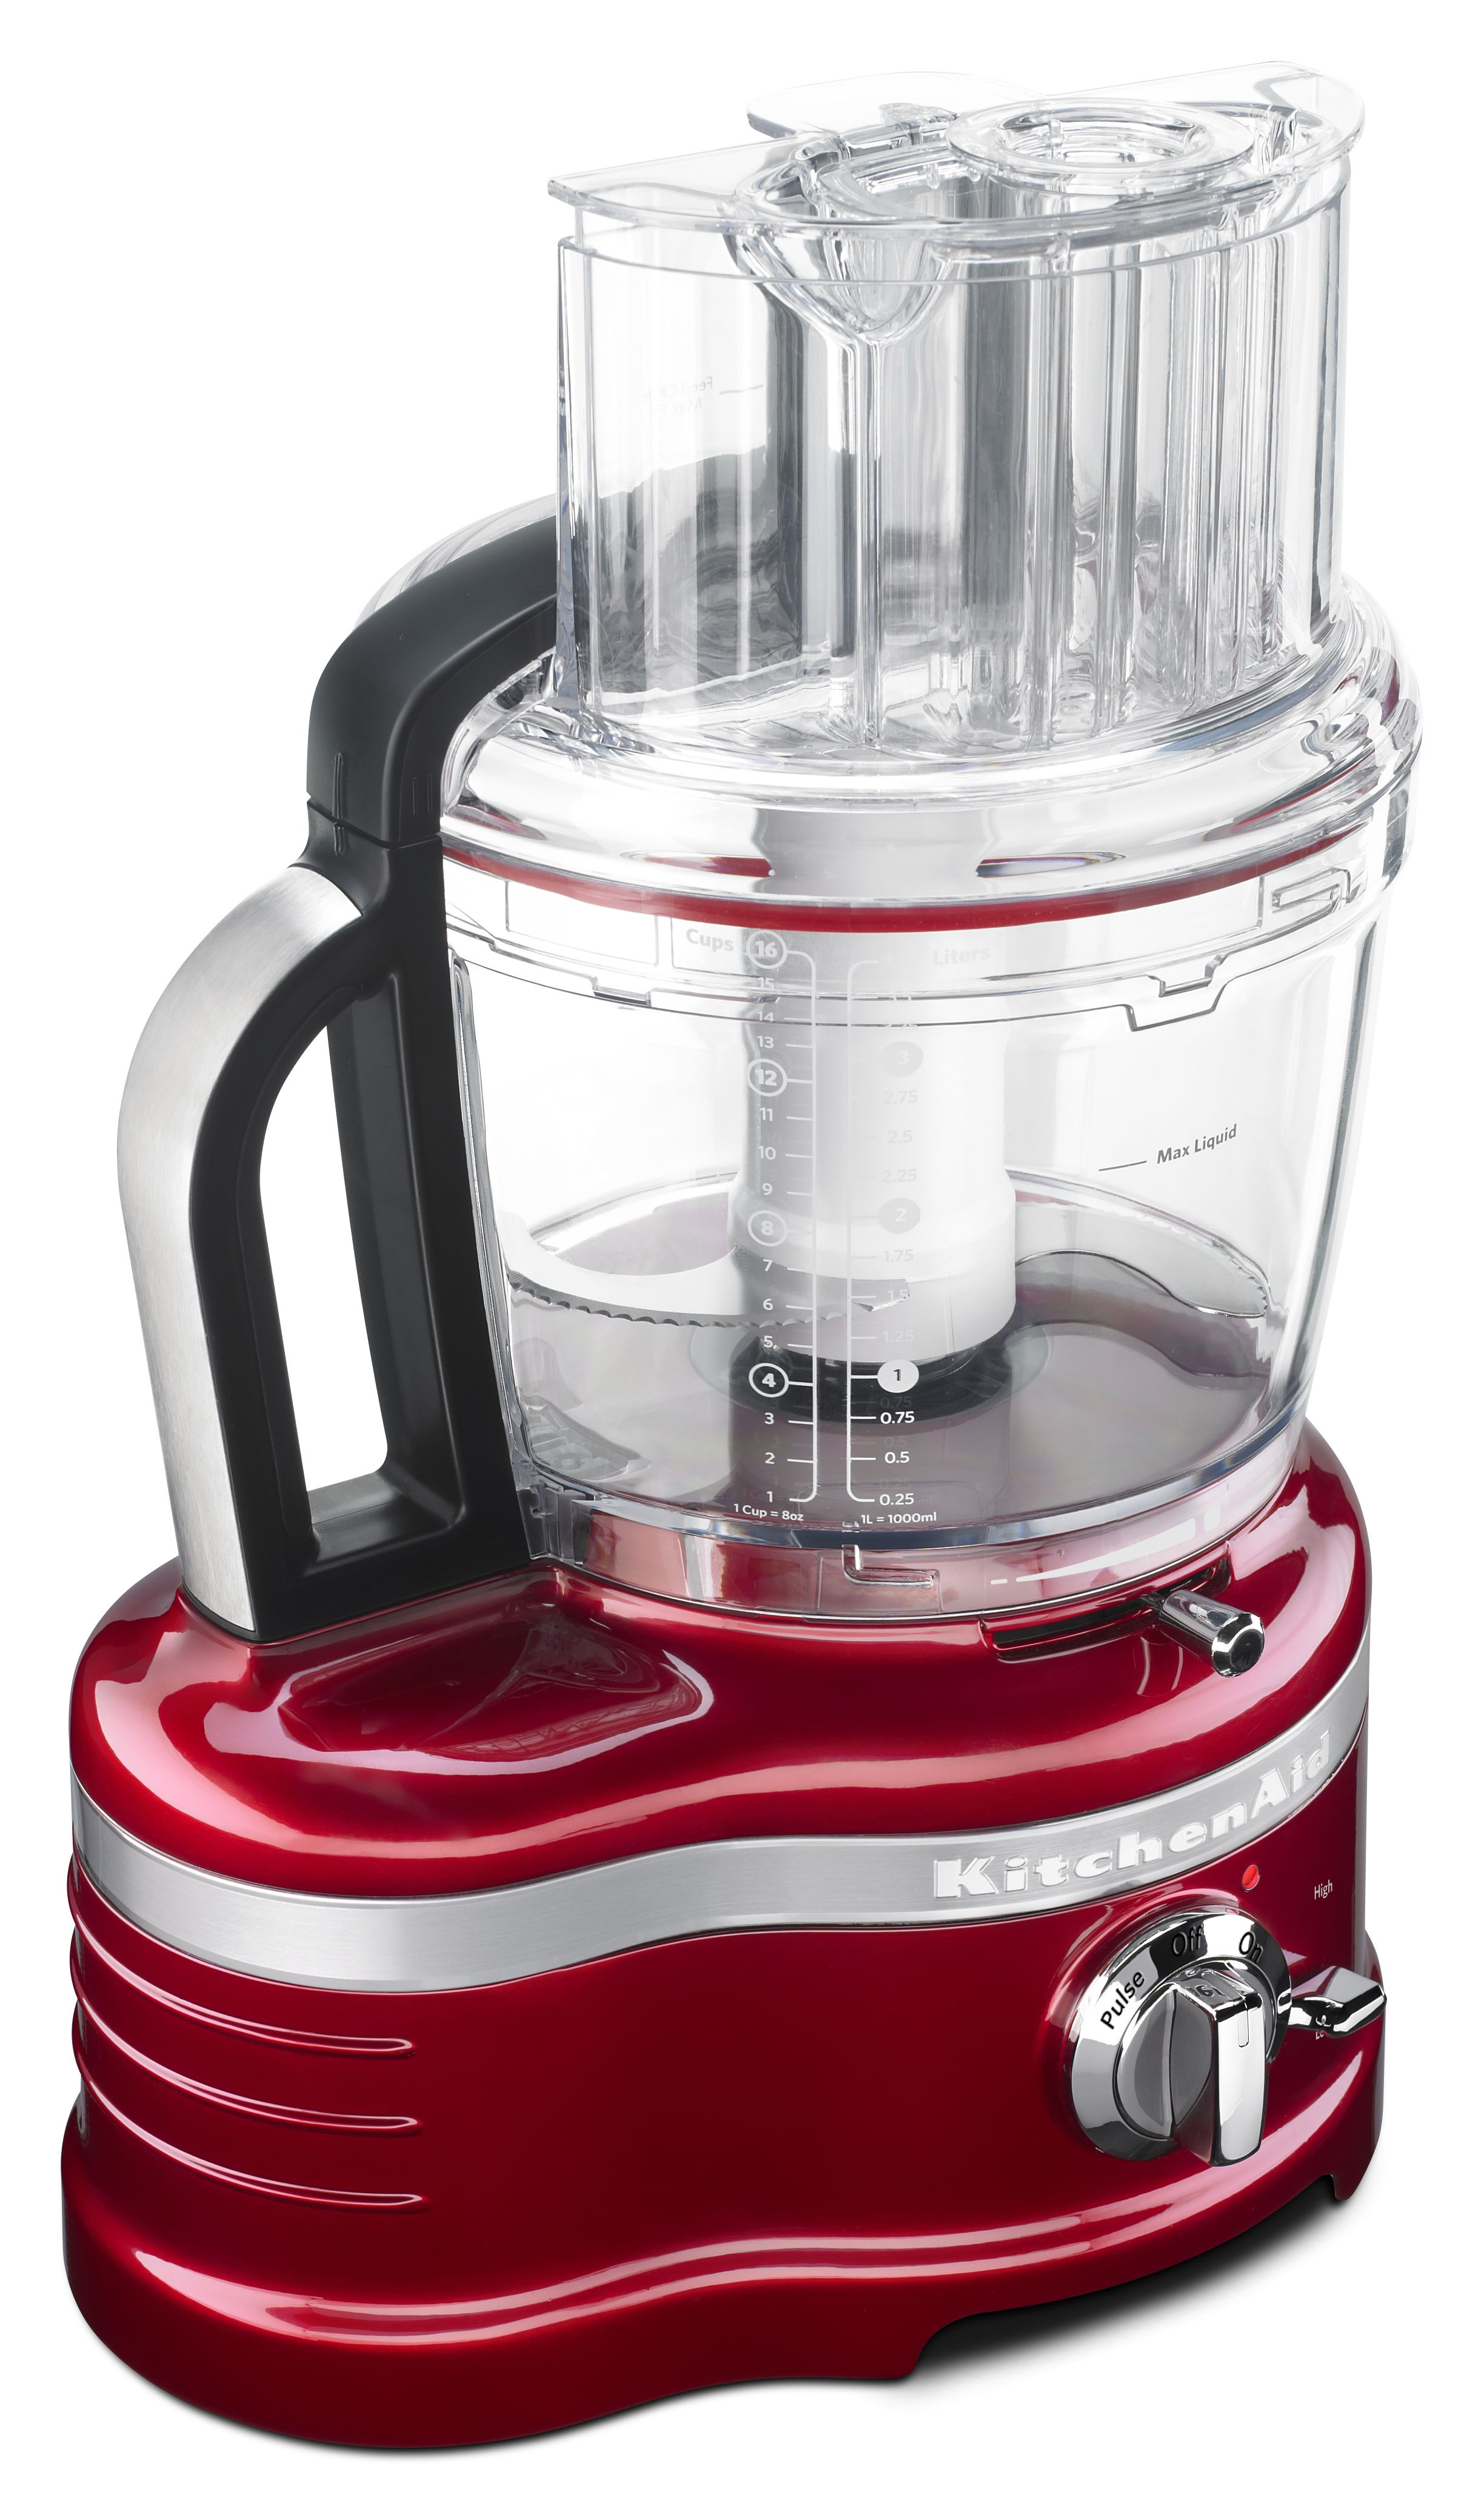 Kitchenaid S Proline 16 Cup Food Processor With Commercial Style Dicing Is It Worth It Review Kitchenaid Food Processor Kitchenaid Artisan Food Processor Food Processor Recipes